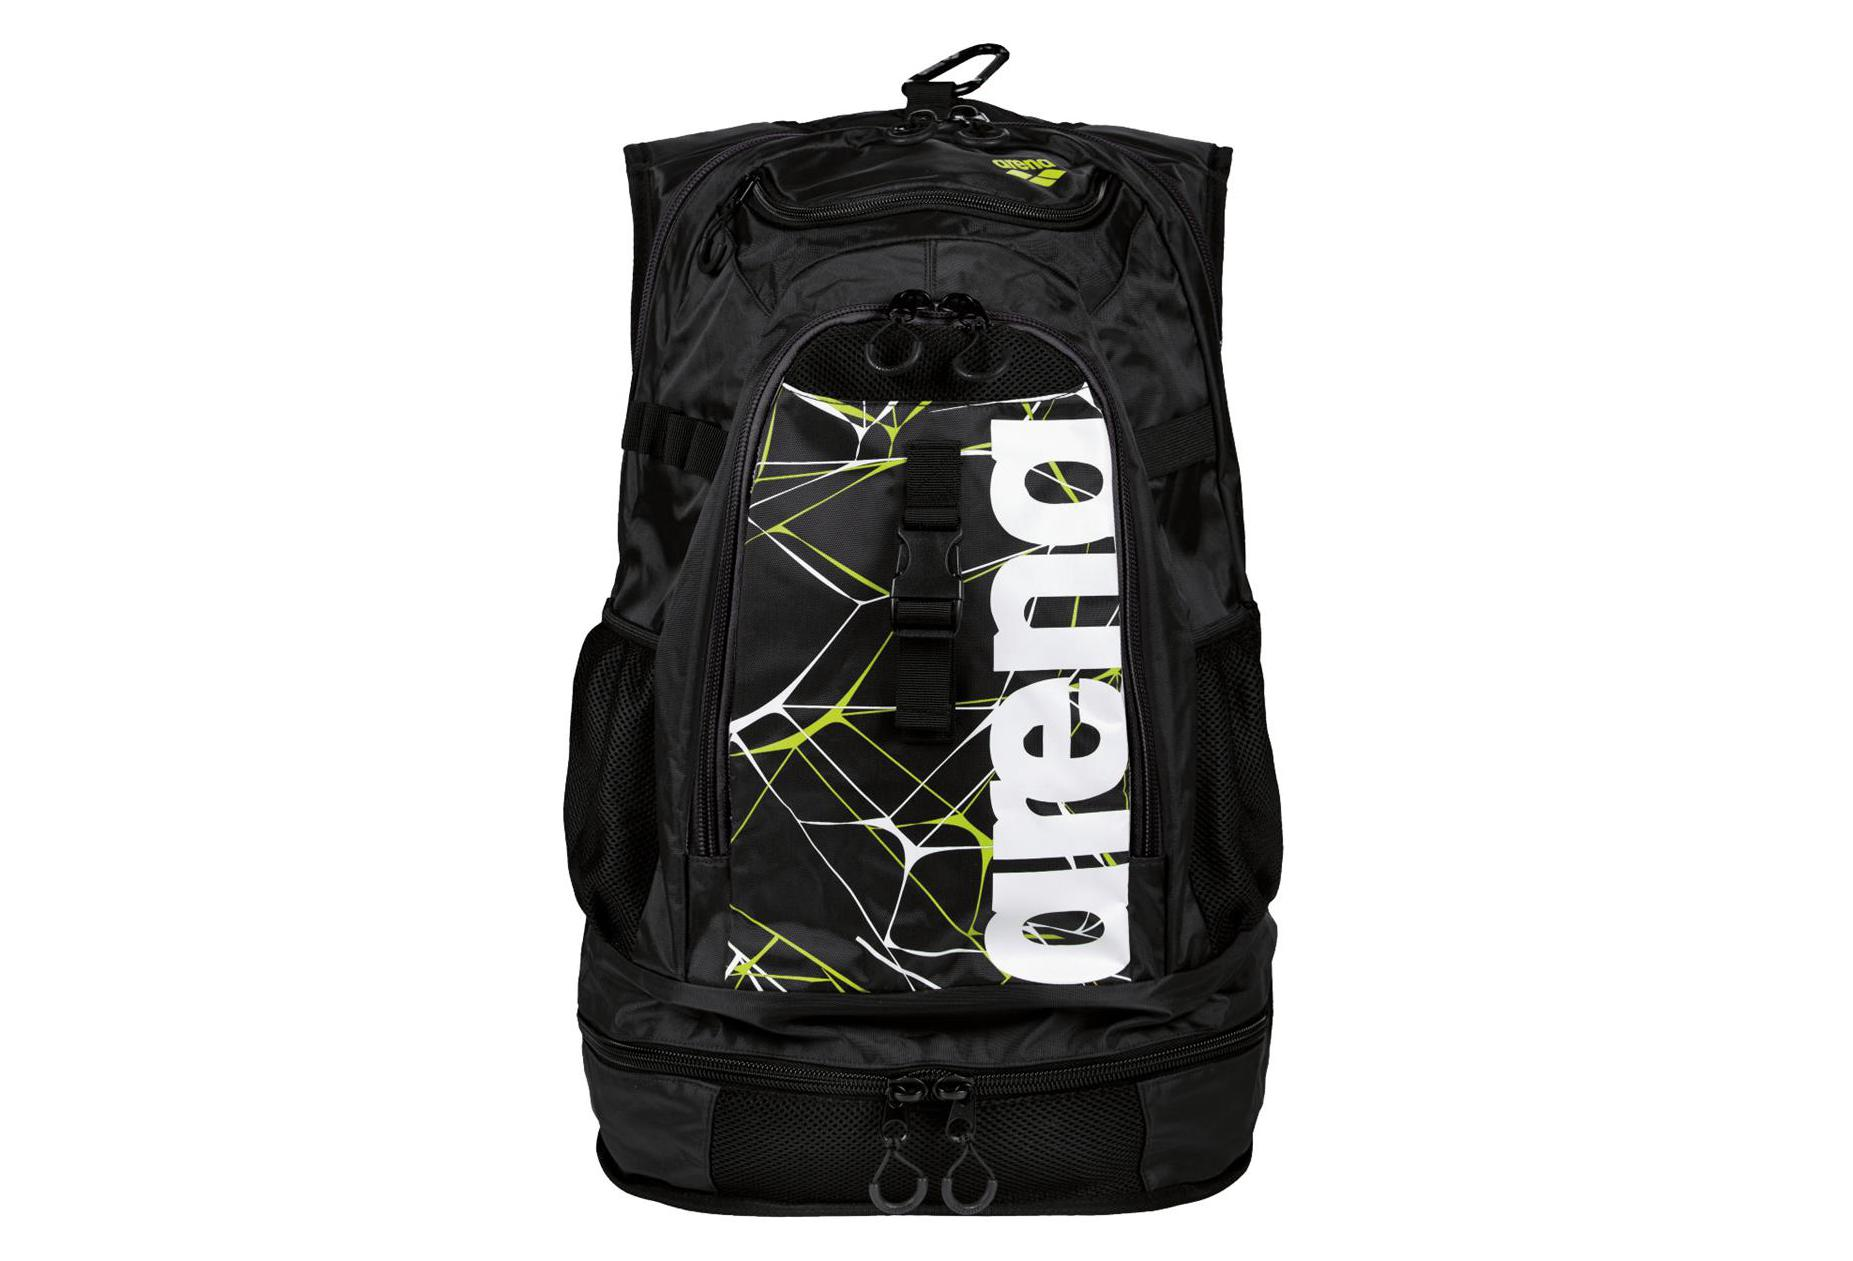 0ff44df5ca90 ARENA FASTPACK 2.1 Backpack Black Yellow